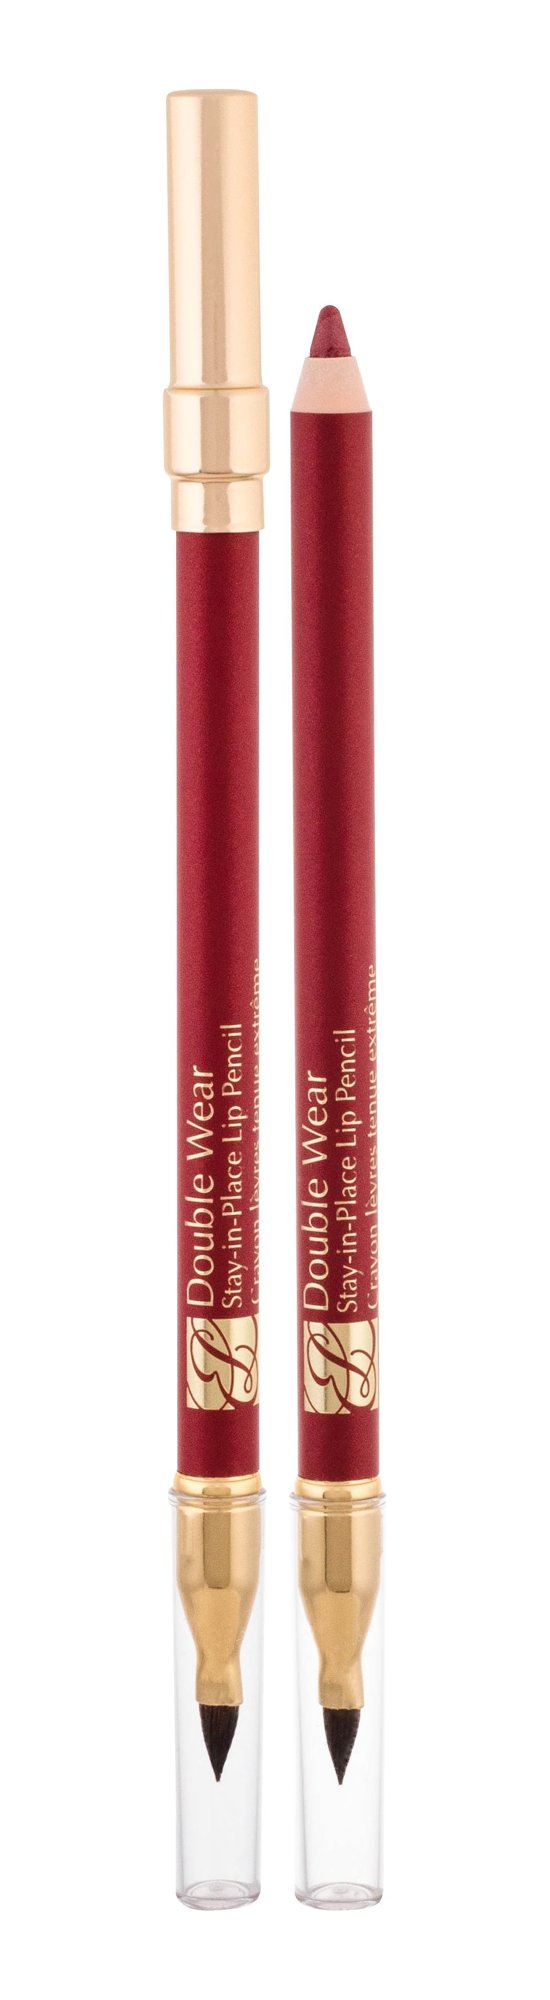 Estée Lauder Double Wear Cosmetic 1,2ml 03 Tawny